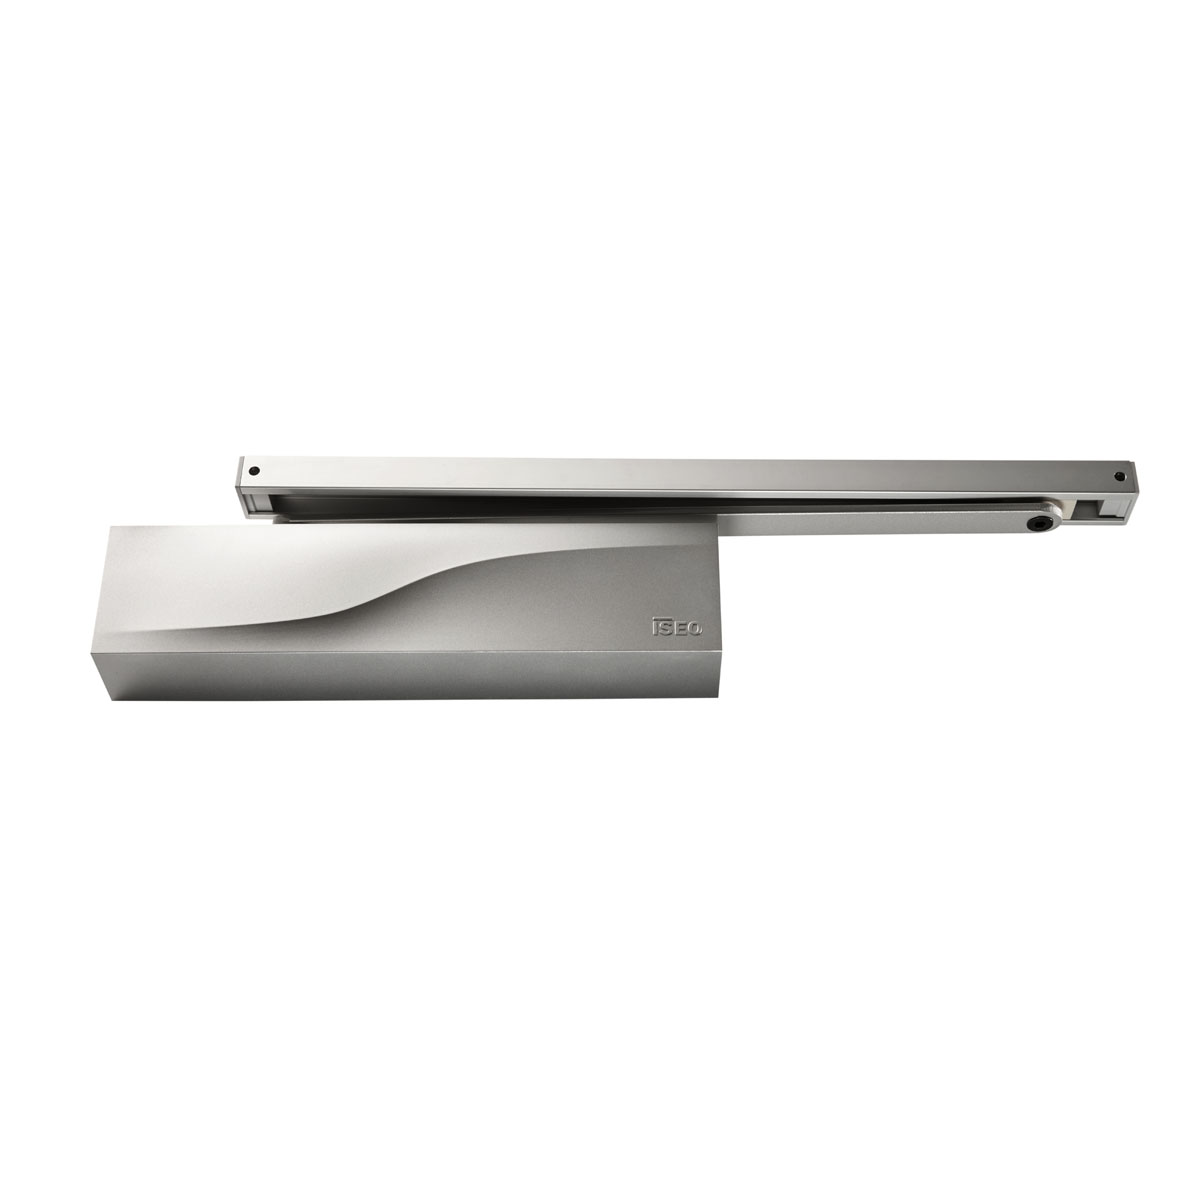 GDR Iseo IS315 Silver Door Closer